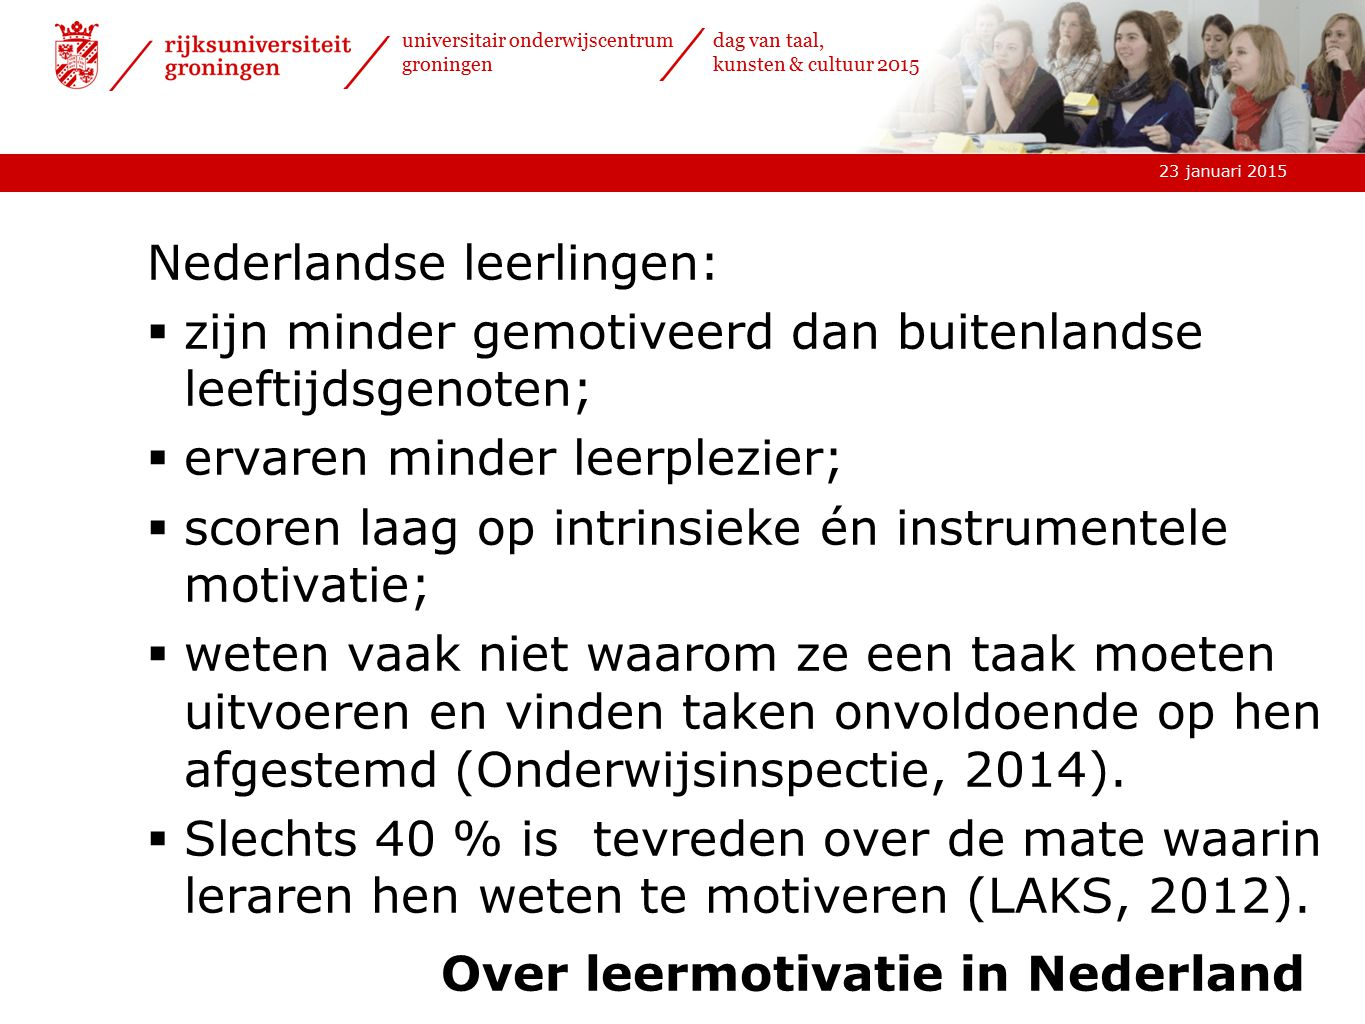 Over leermotivatie in Nederland